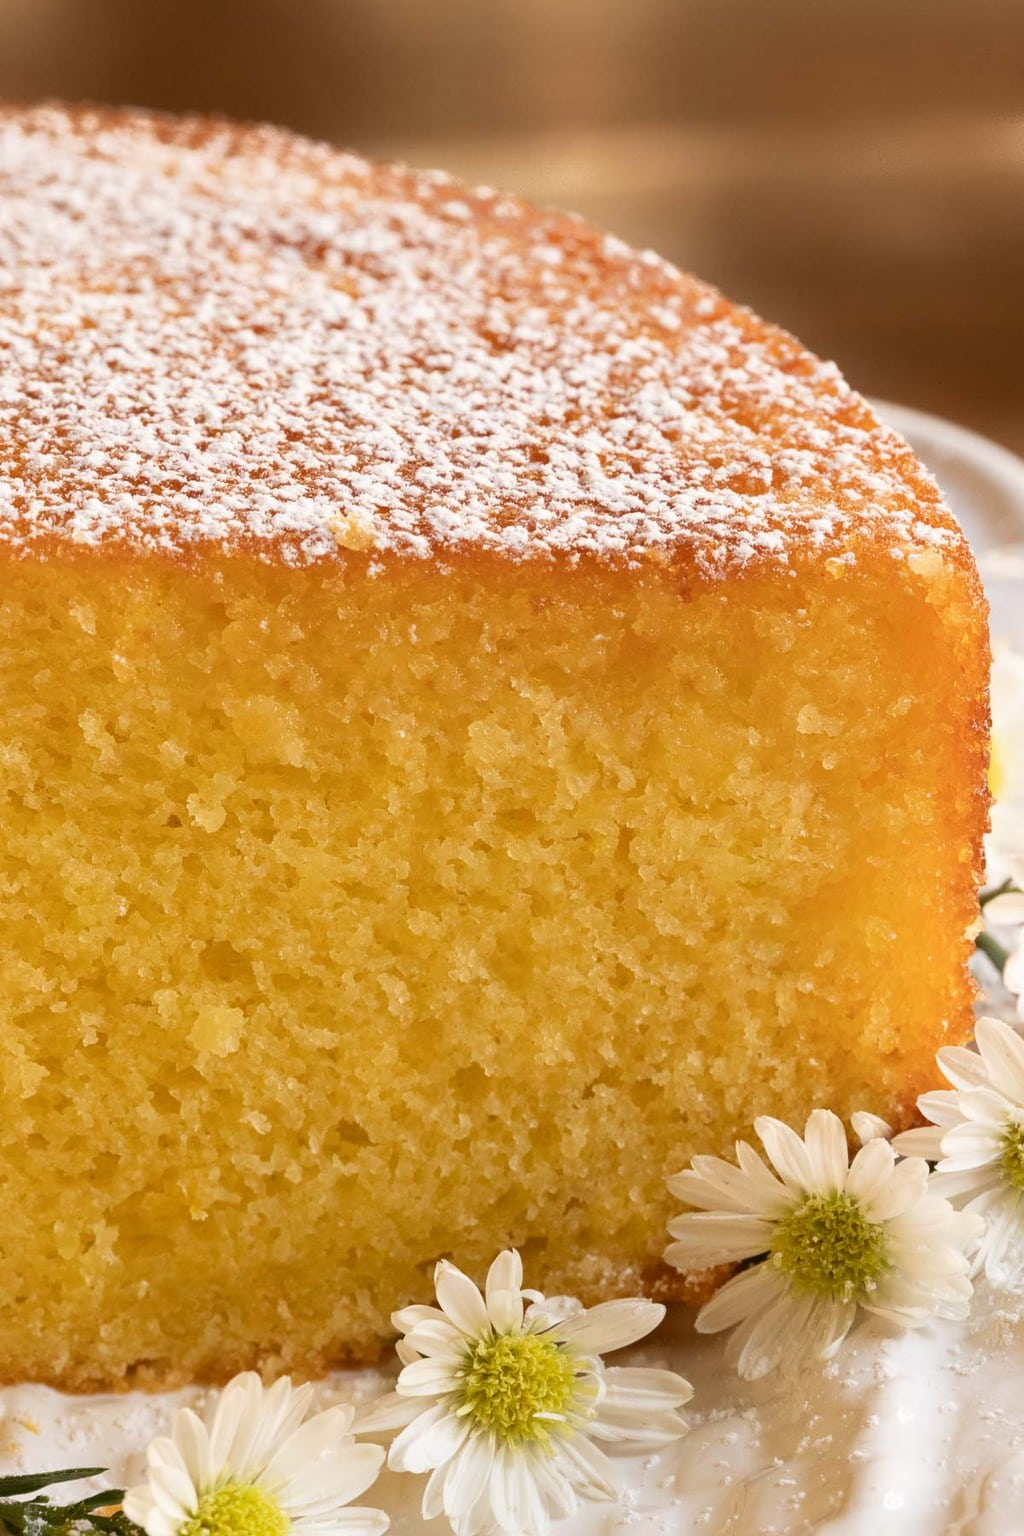 Vertical ultra closeup photo of the inside of a Ridiculously Easy Orange Olive Oil Cake featuring the crumb and decorated with powdered sugar and mini daisies.